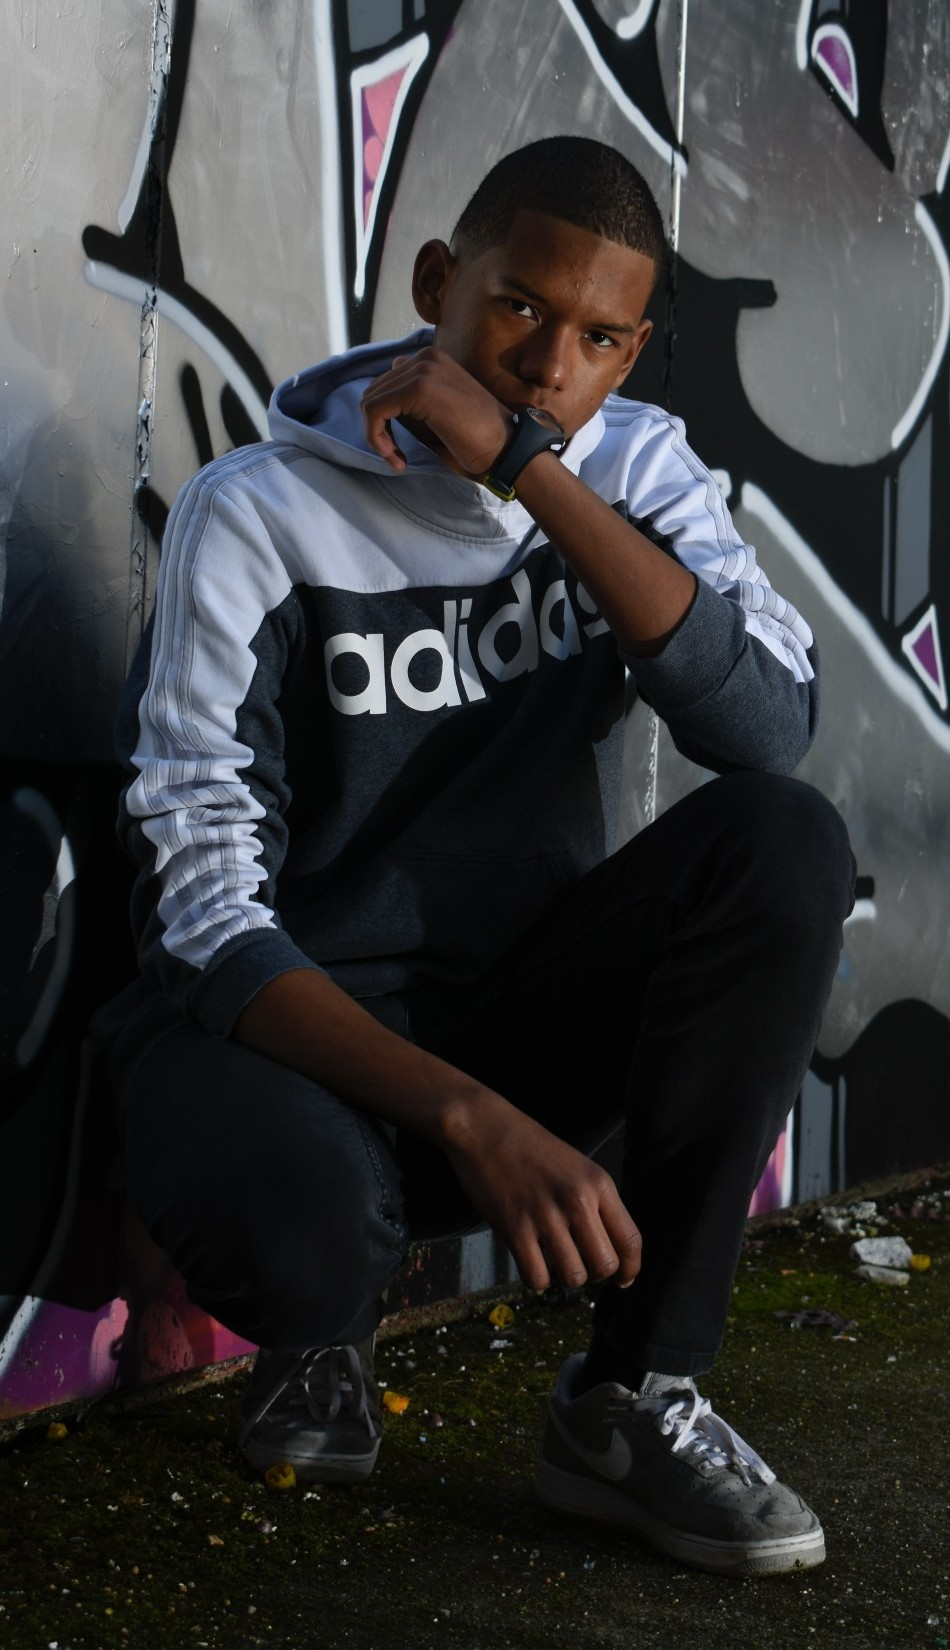 YouthAdidasCropd